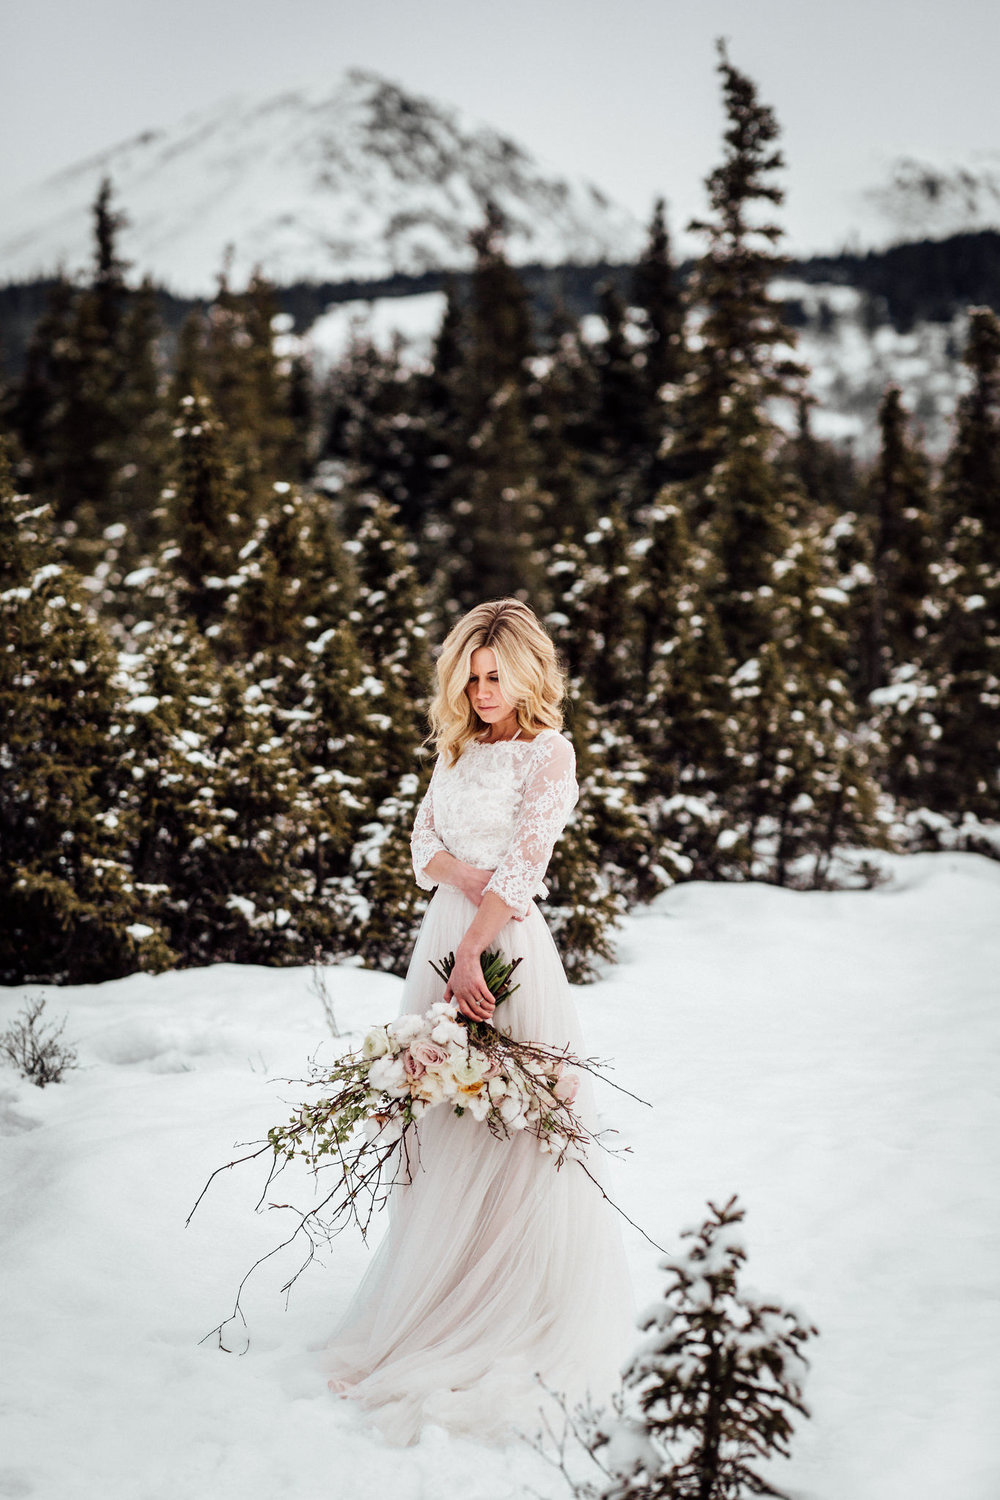 Blomma Designs - Alaska Wedding Design, Decor, Installations and Floral Services